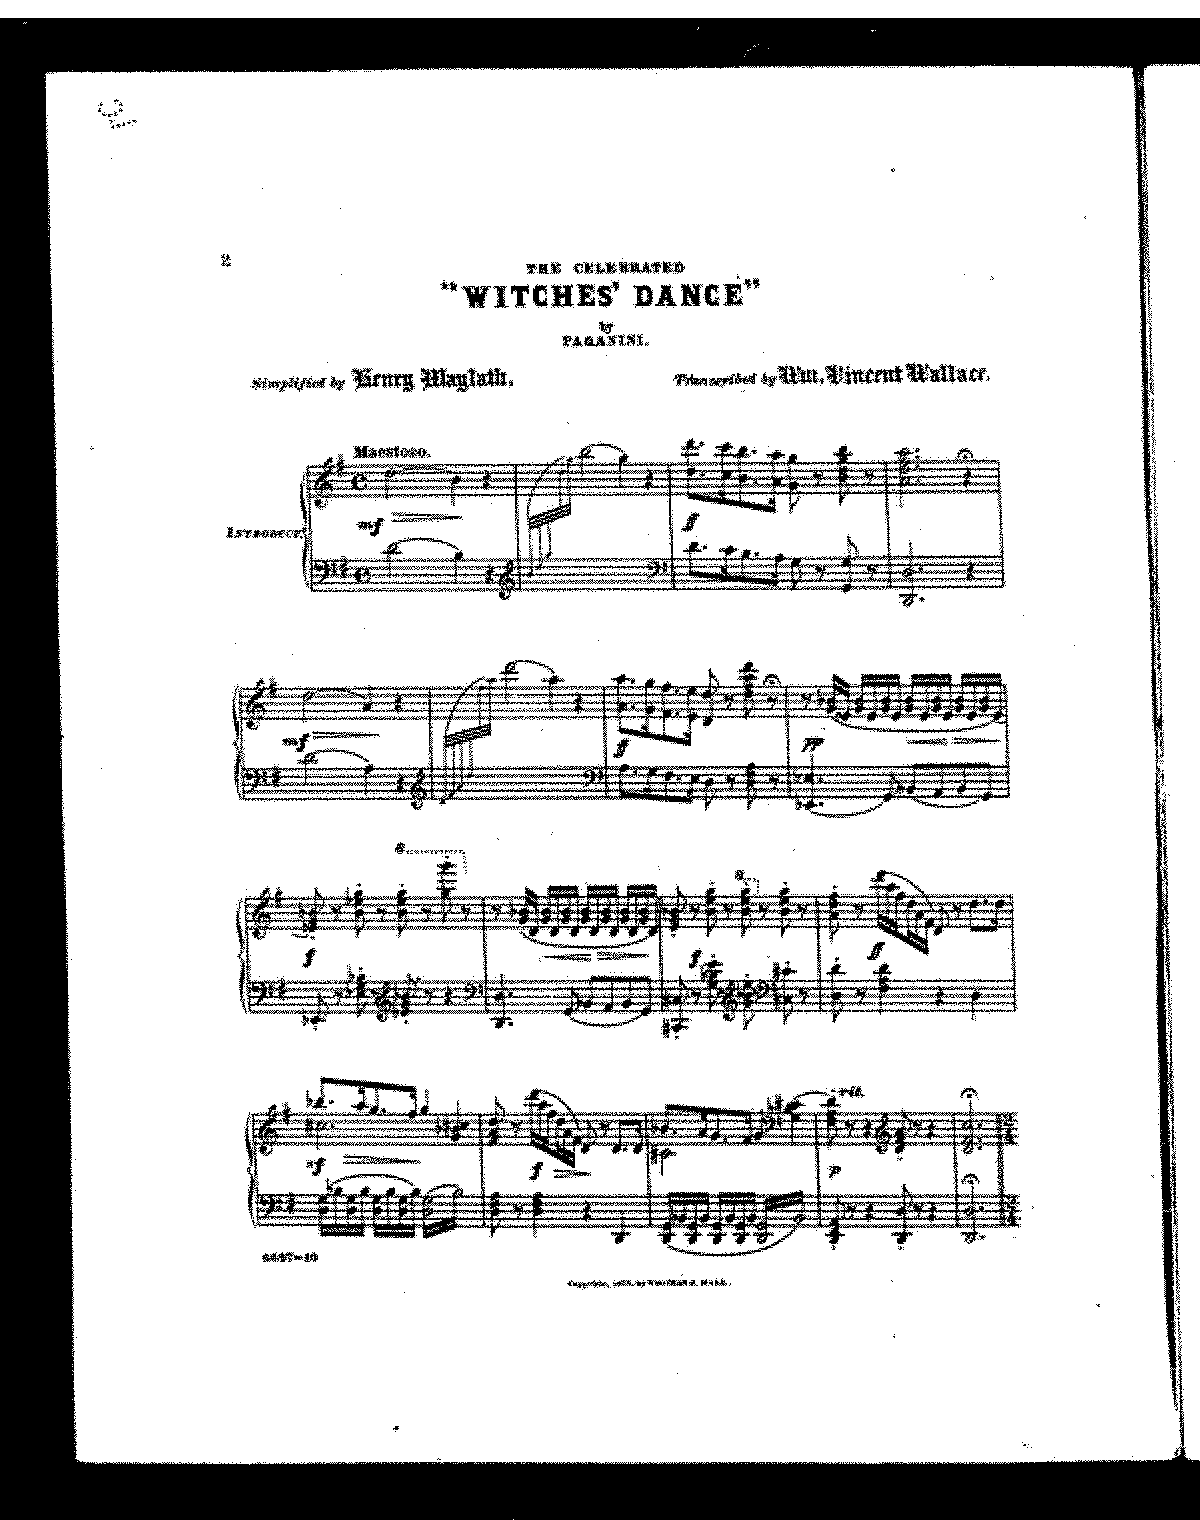 Paganini-Wallace-Maylath The Witches' Dance.pdf